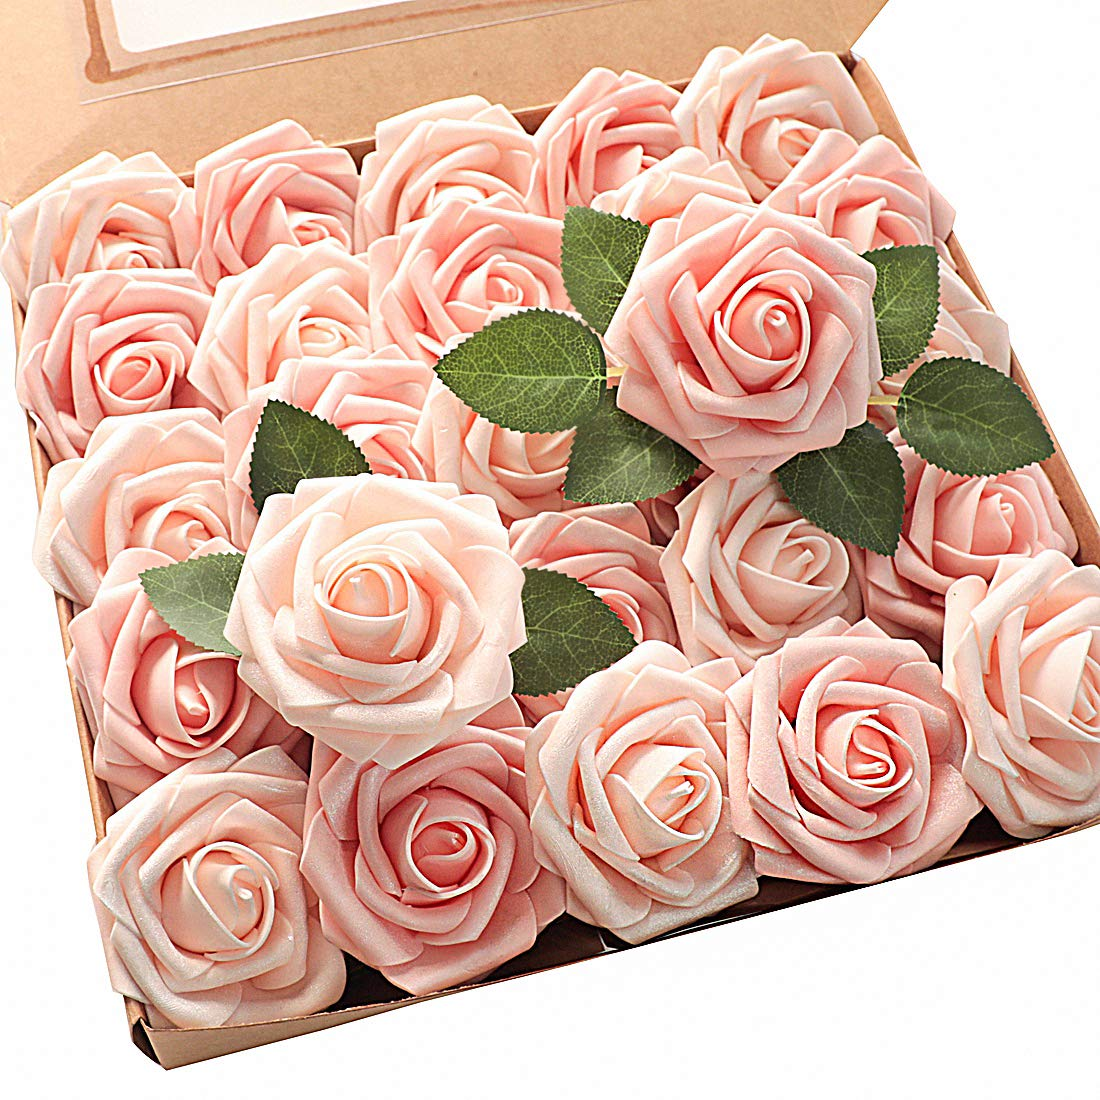 Floroom Artificial Flowers Shimmer Blush & Peach Roses 25pcs Real Looking Fake Roses w/Stem for DIY Wedding Bouquets Centerpieces Arrangements Party Baby Shower Home Decorations